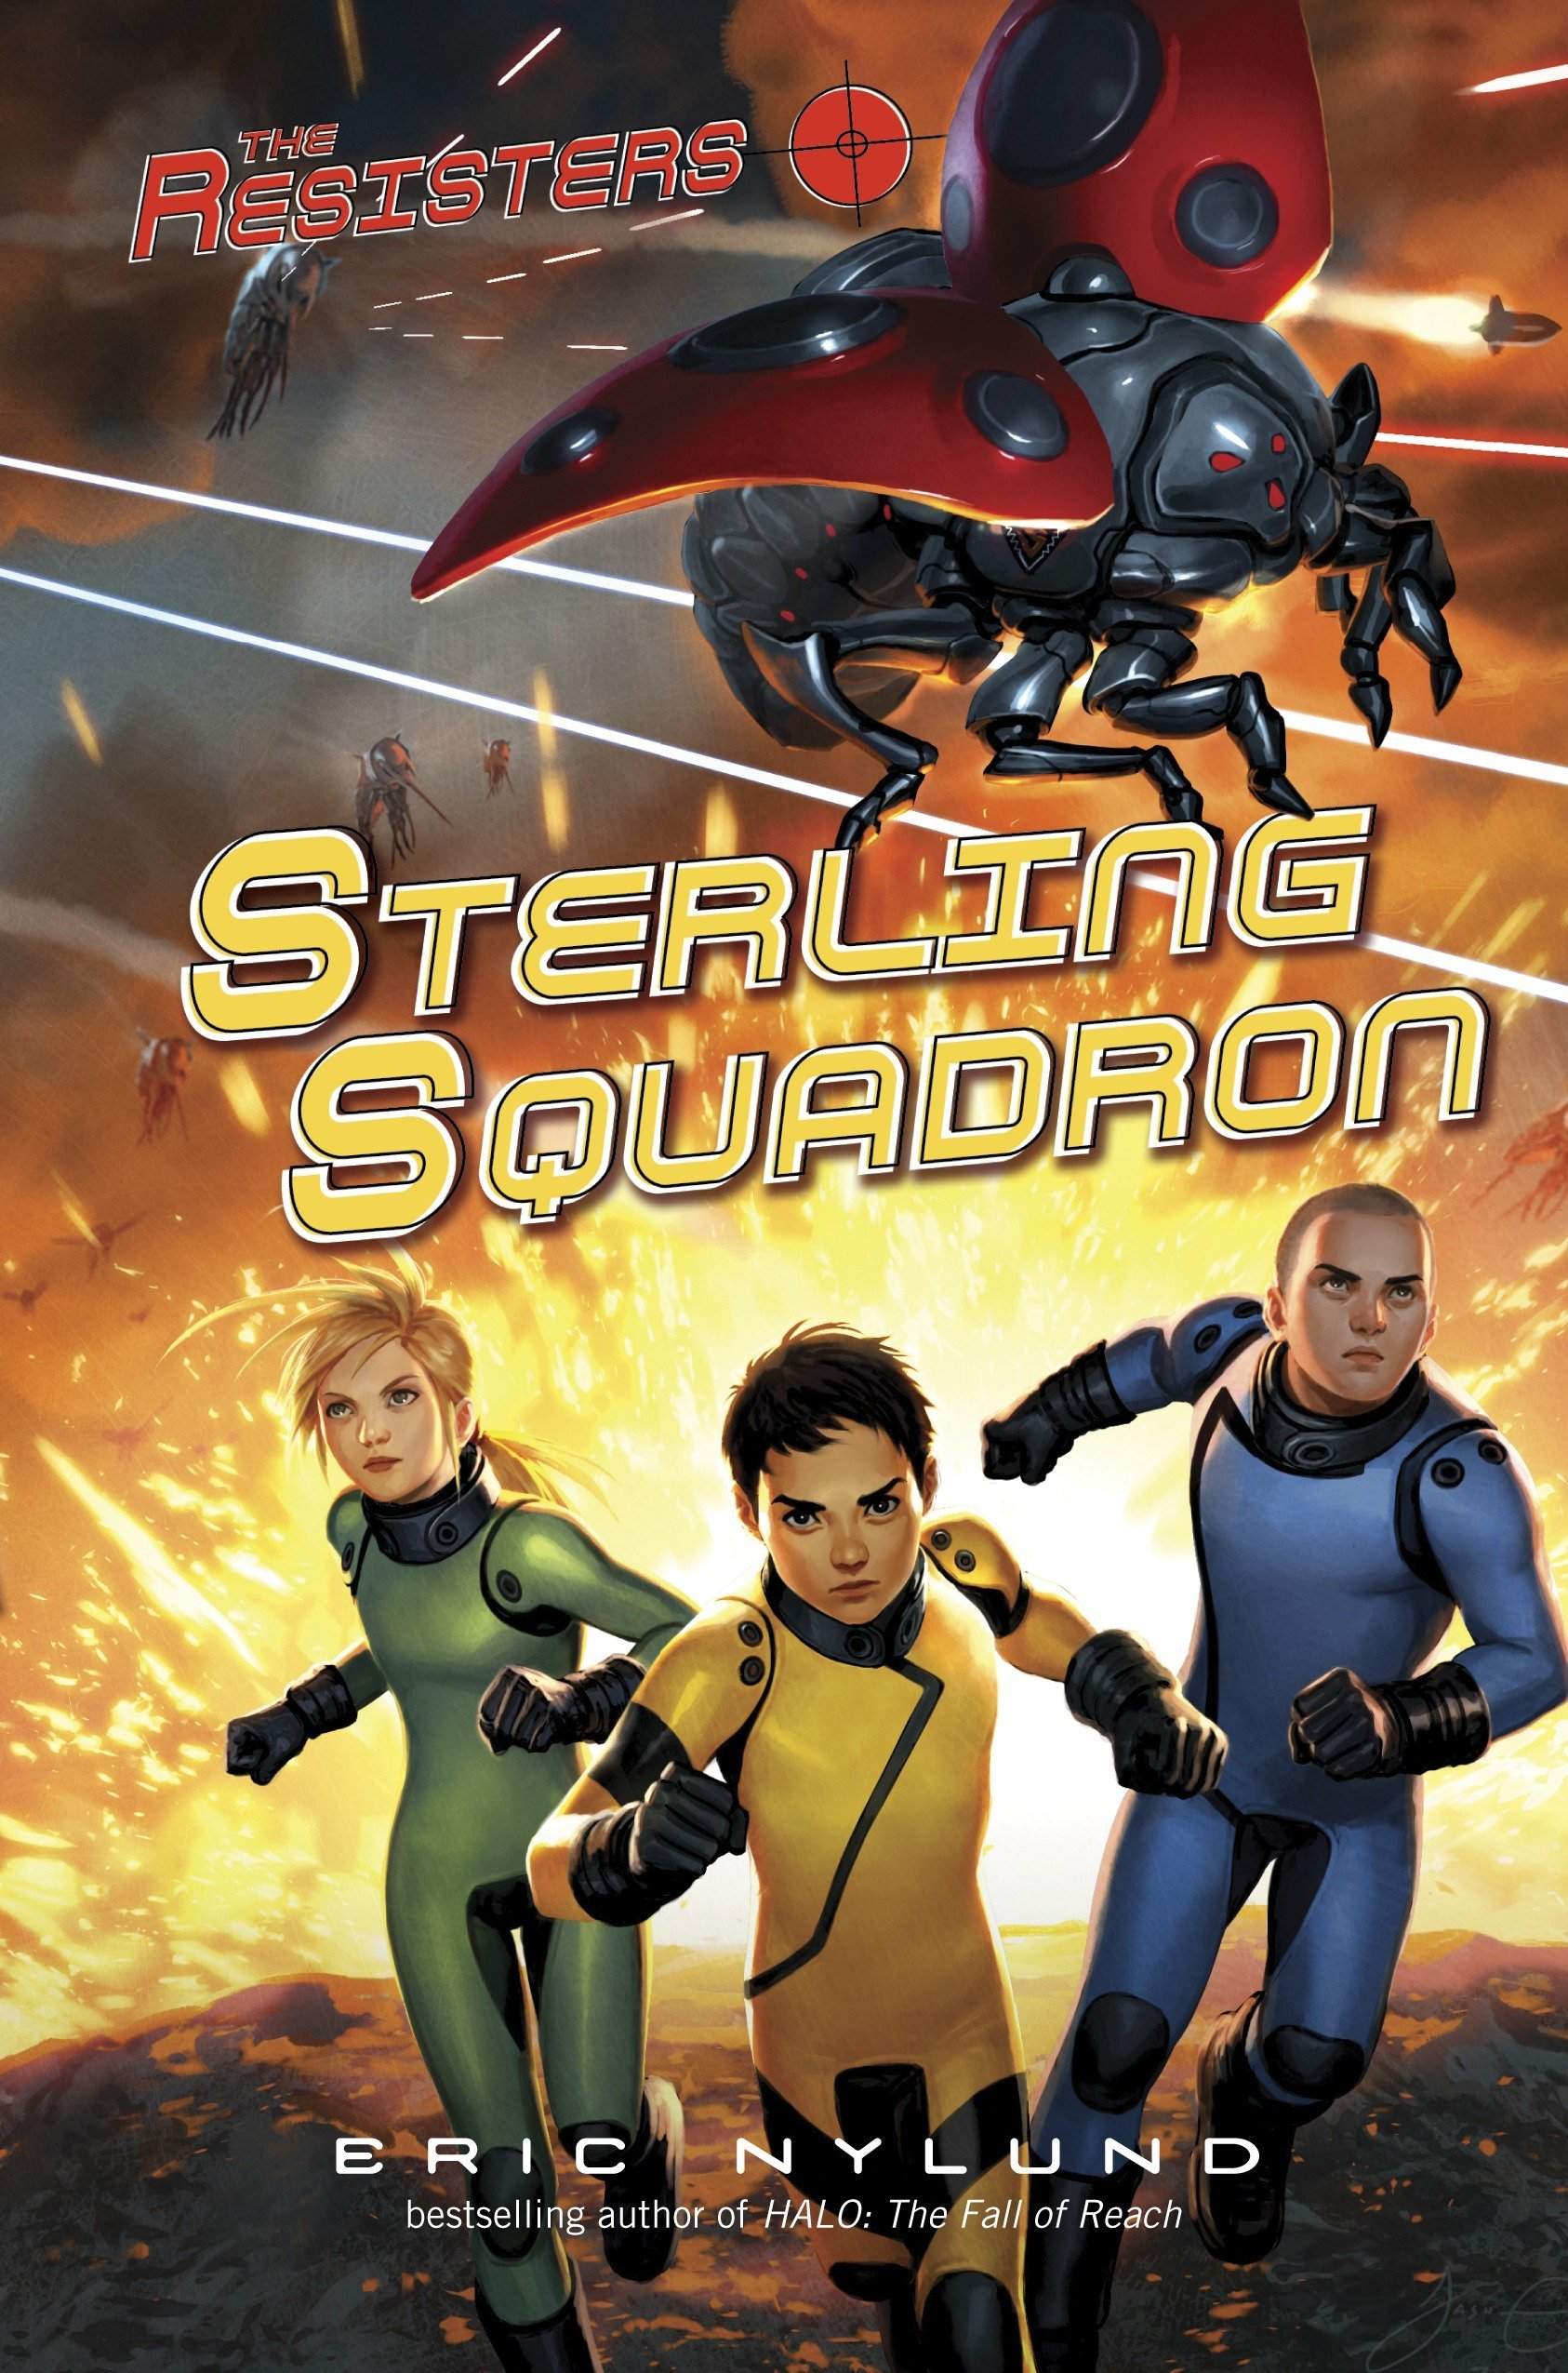 Read Online The Resisters #2: Sterling Squadron pdf